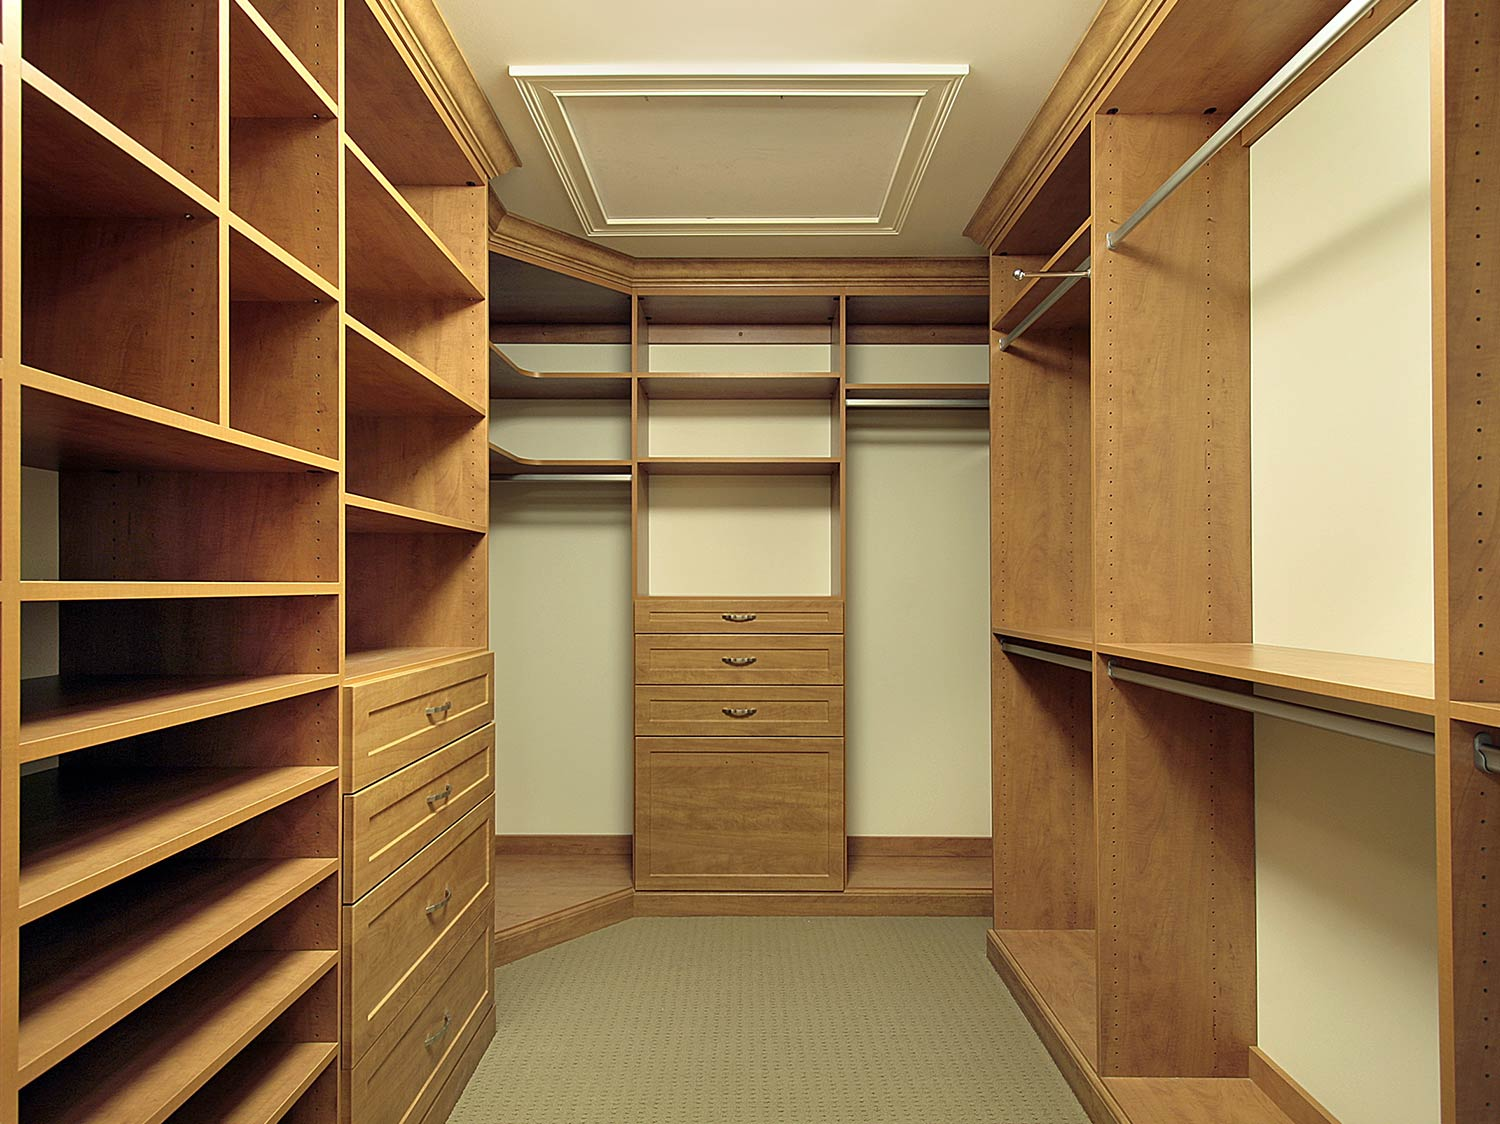 Oak traditional style walk in wardrobe with various shelving units, hangers and draws.